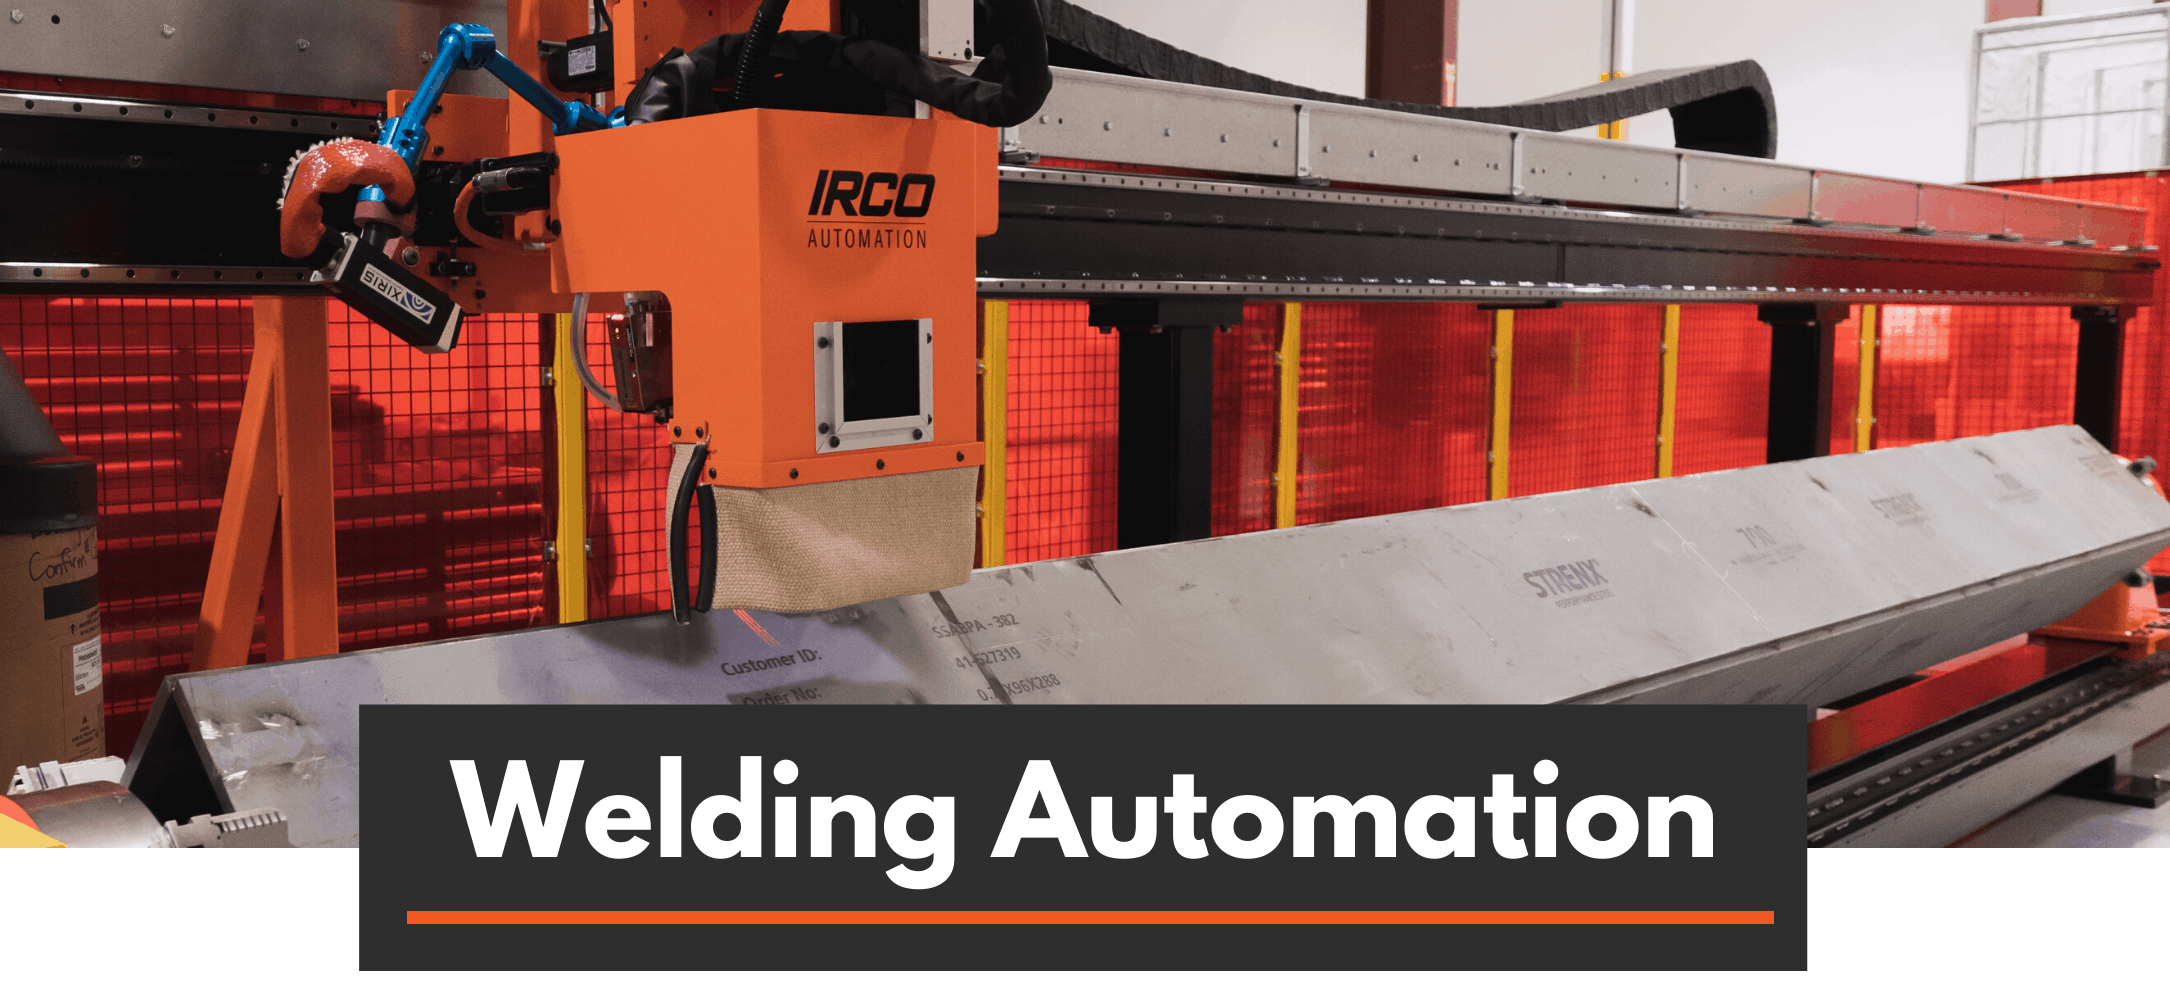 Linear Robot for box beam welding